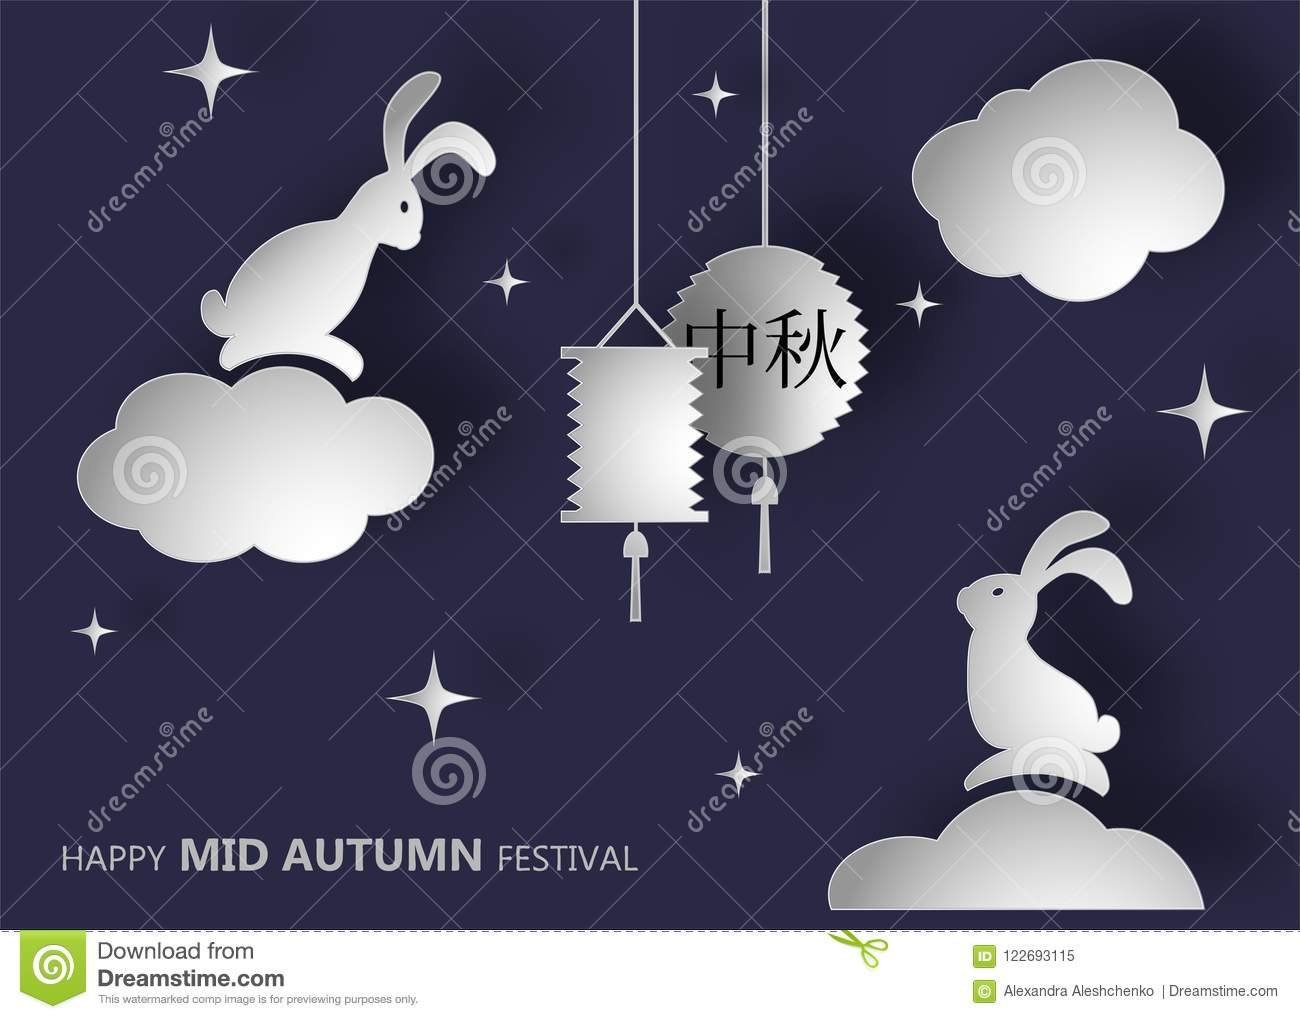 Chinese mid autumn festival greeting card stock vector chinese mid autumn festival greeting card m4hsunfo